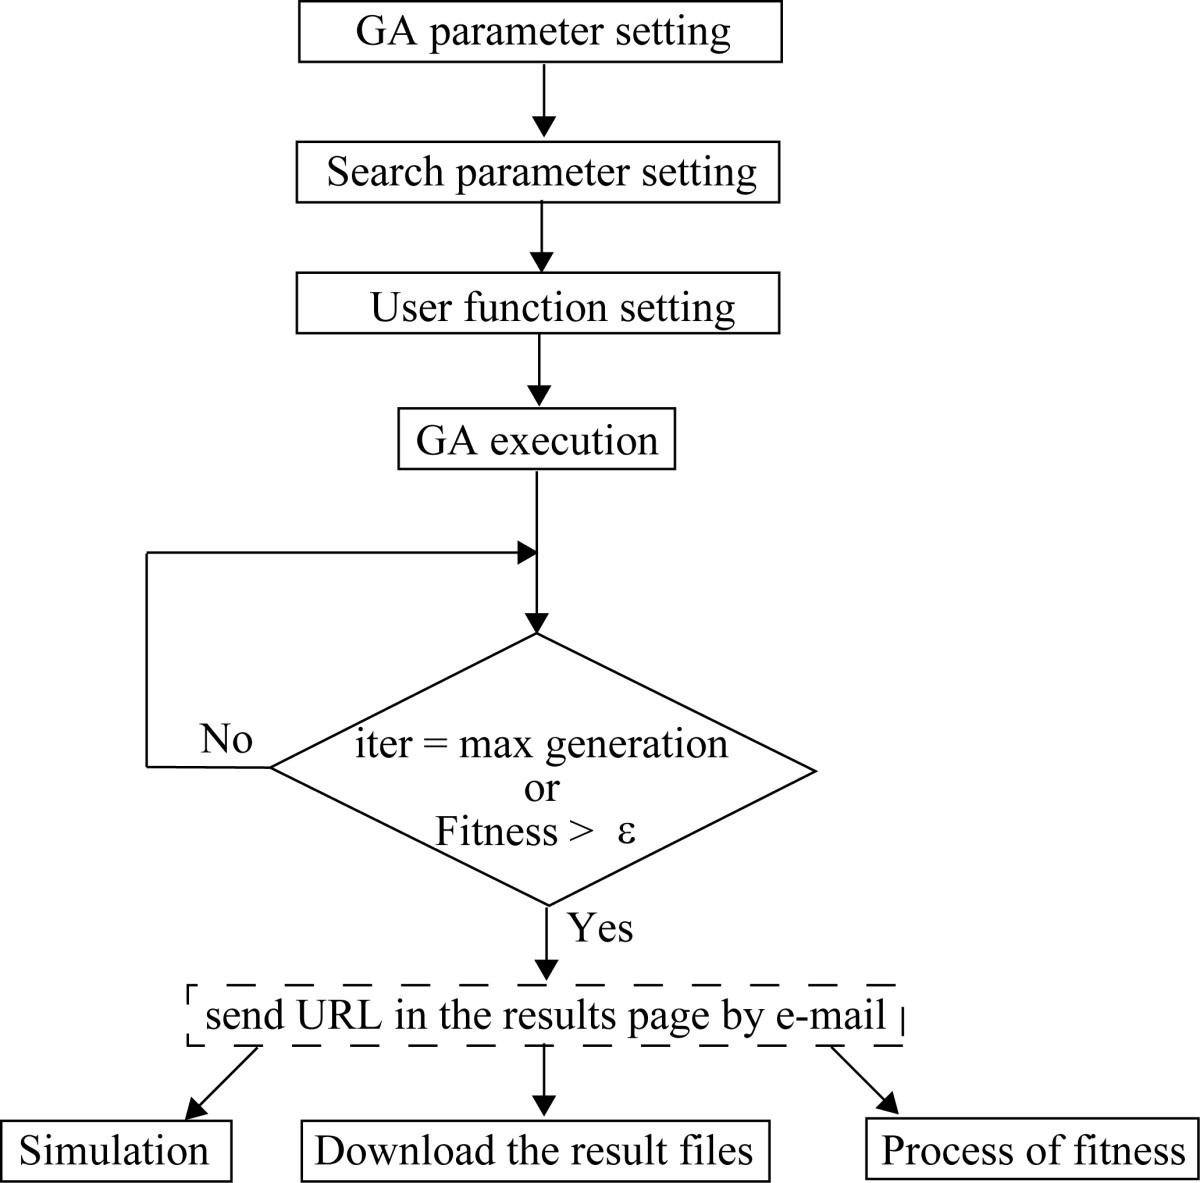 https://static-content.springer.com/image/art%3A10.1186%2F1751-0473-7-9/MediaObjects/13029_2012_Article_74_Fig2_HTML.jpg